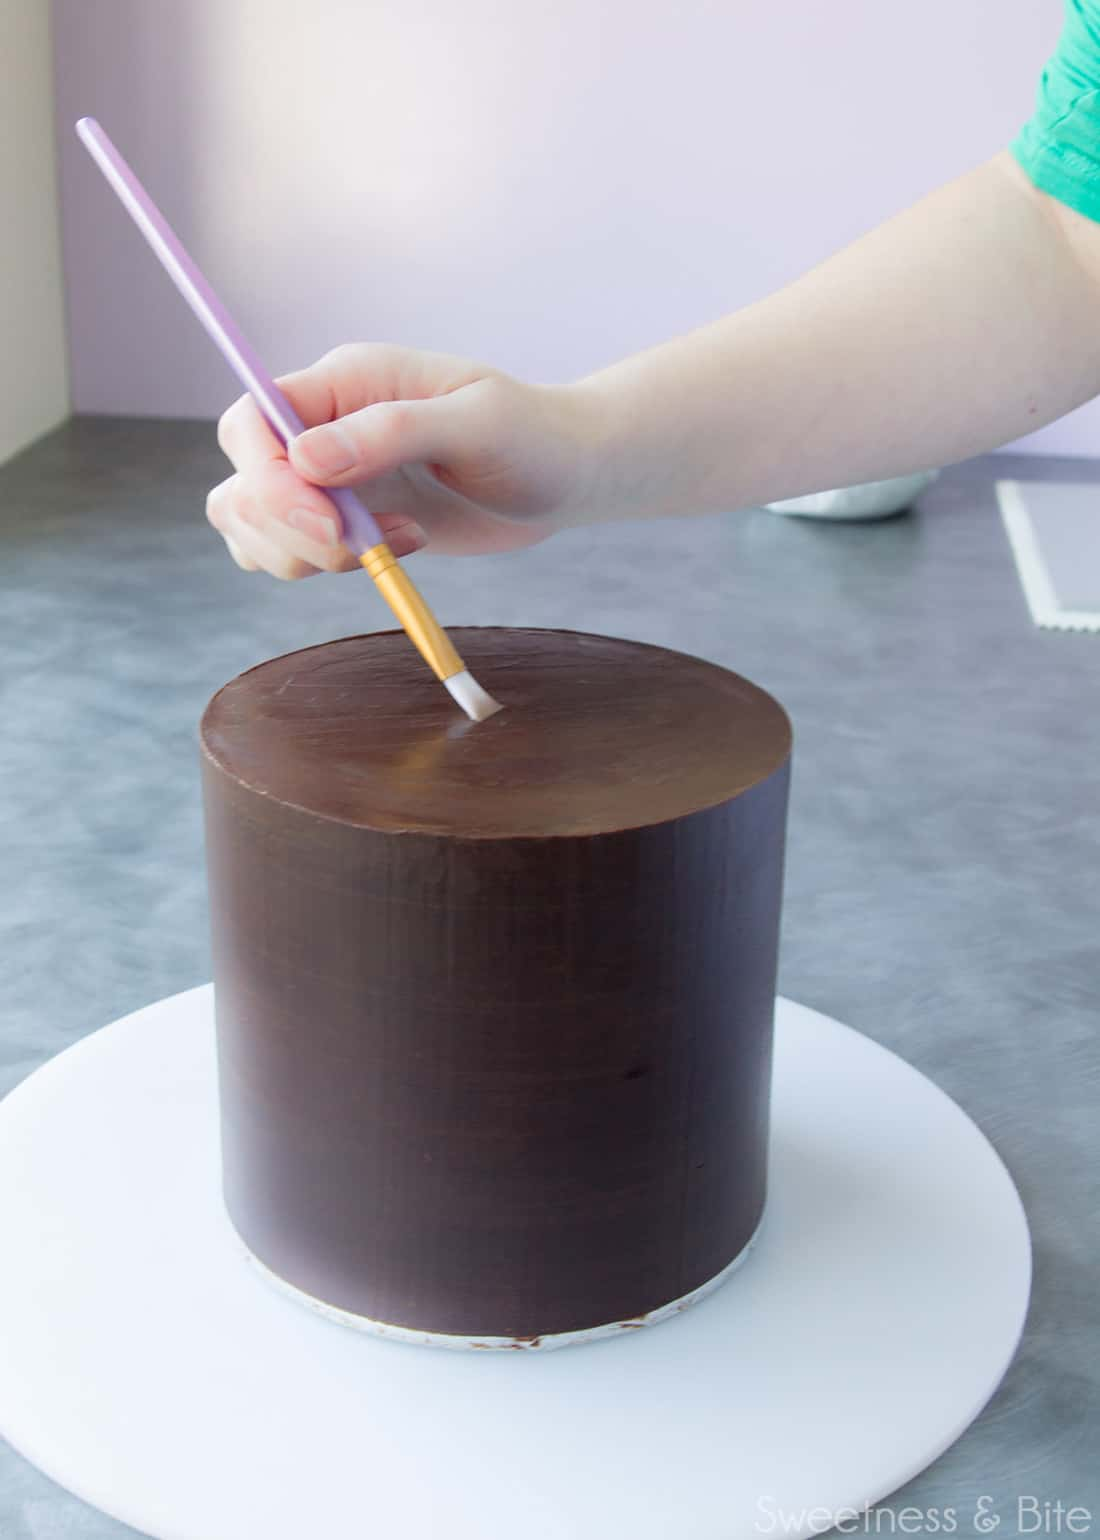 How To Wrap A Cake With Fondant Sweetness Bite